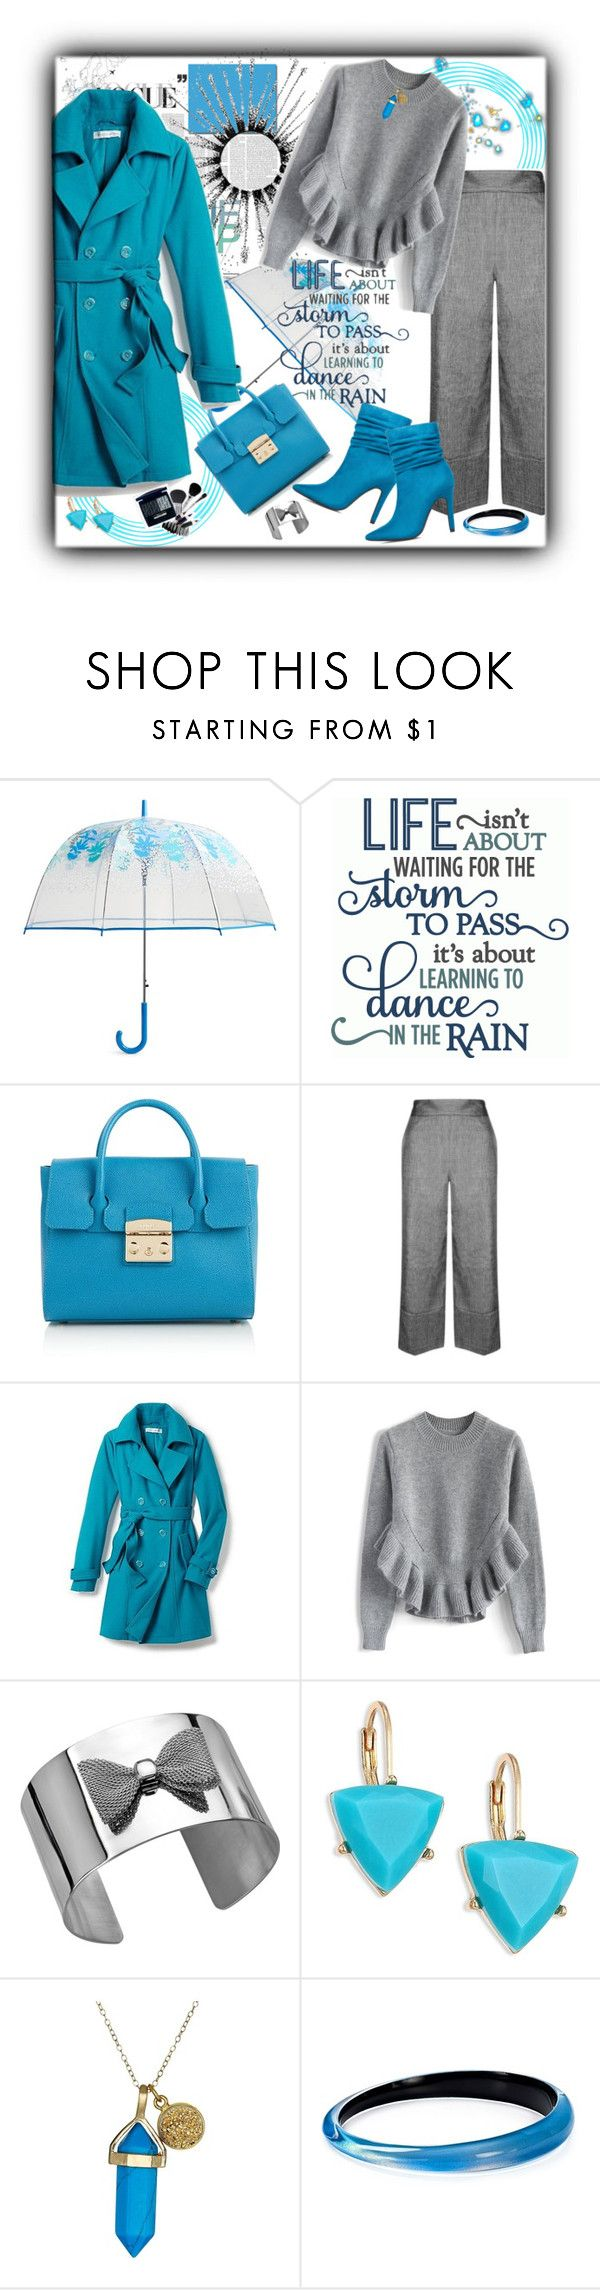 """Rainy Day/Trench"" by kazza-smith ❤ liked on Polyvore featuring Vera Bradley, Furla, Topshop, New York & Company, Chicwish, Braven, ABS by Allen Schwartz, Dee Berkley and Alexis Bittar"